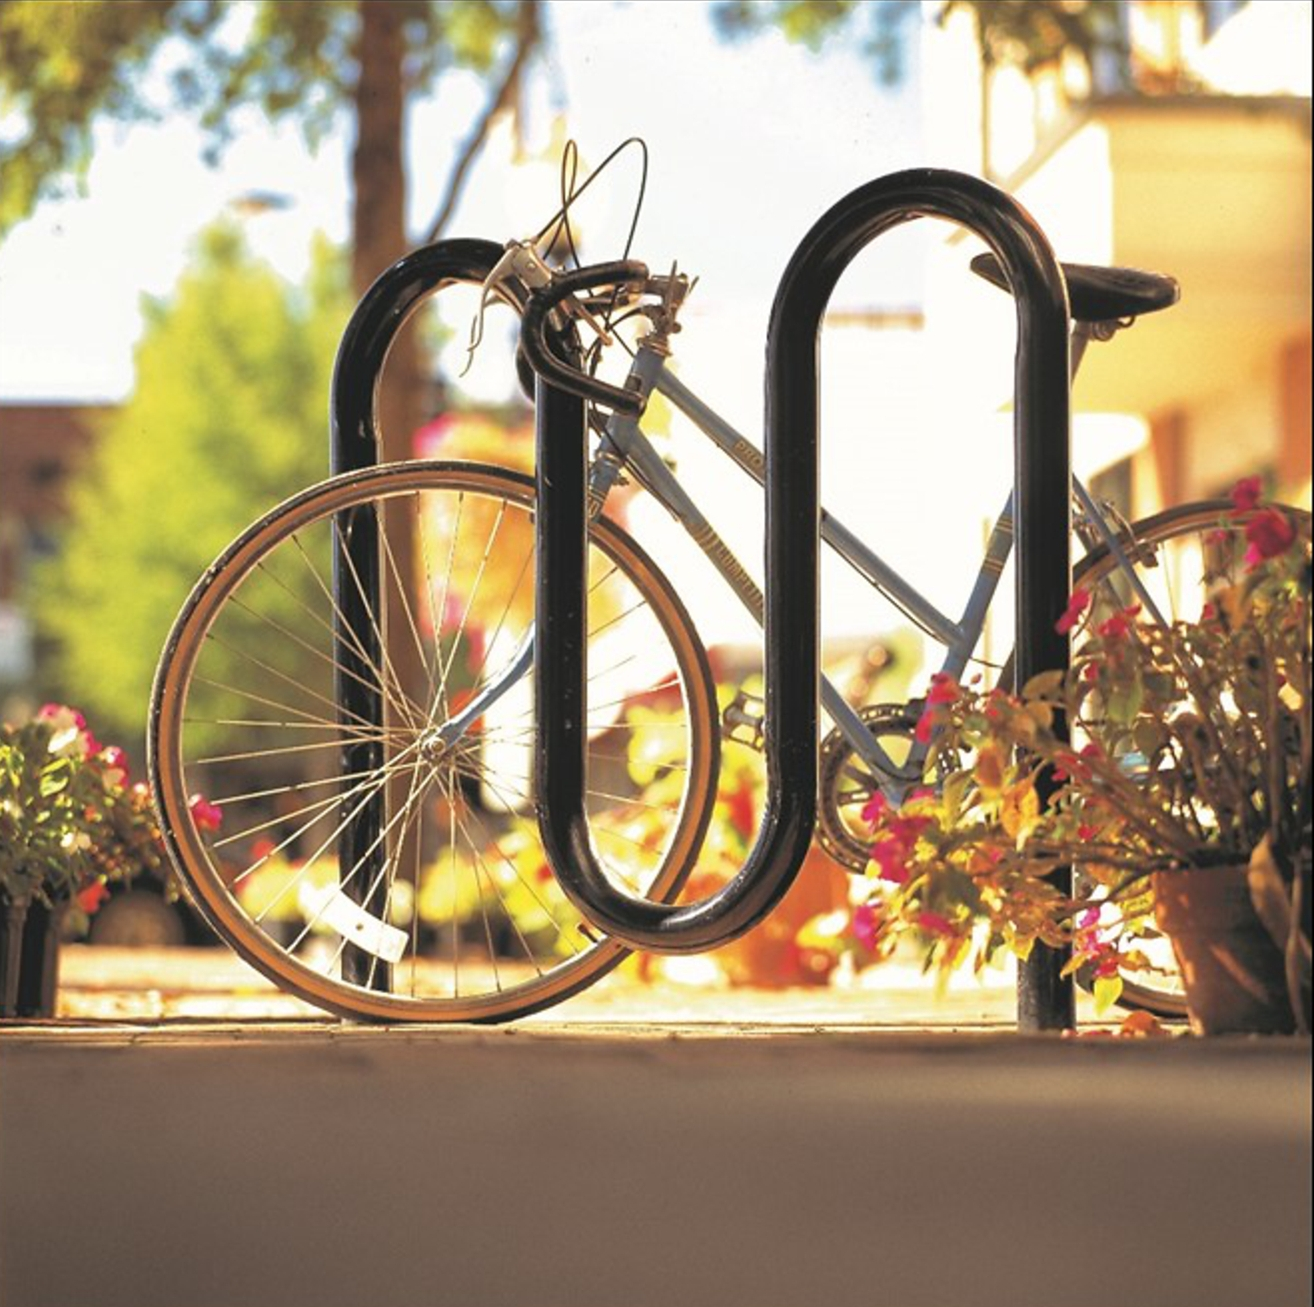 Bike Racks   In-ground, surface and portable racks available in many styles and options.